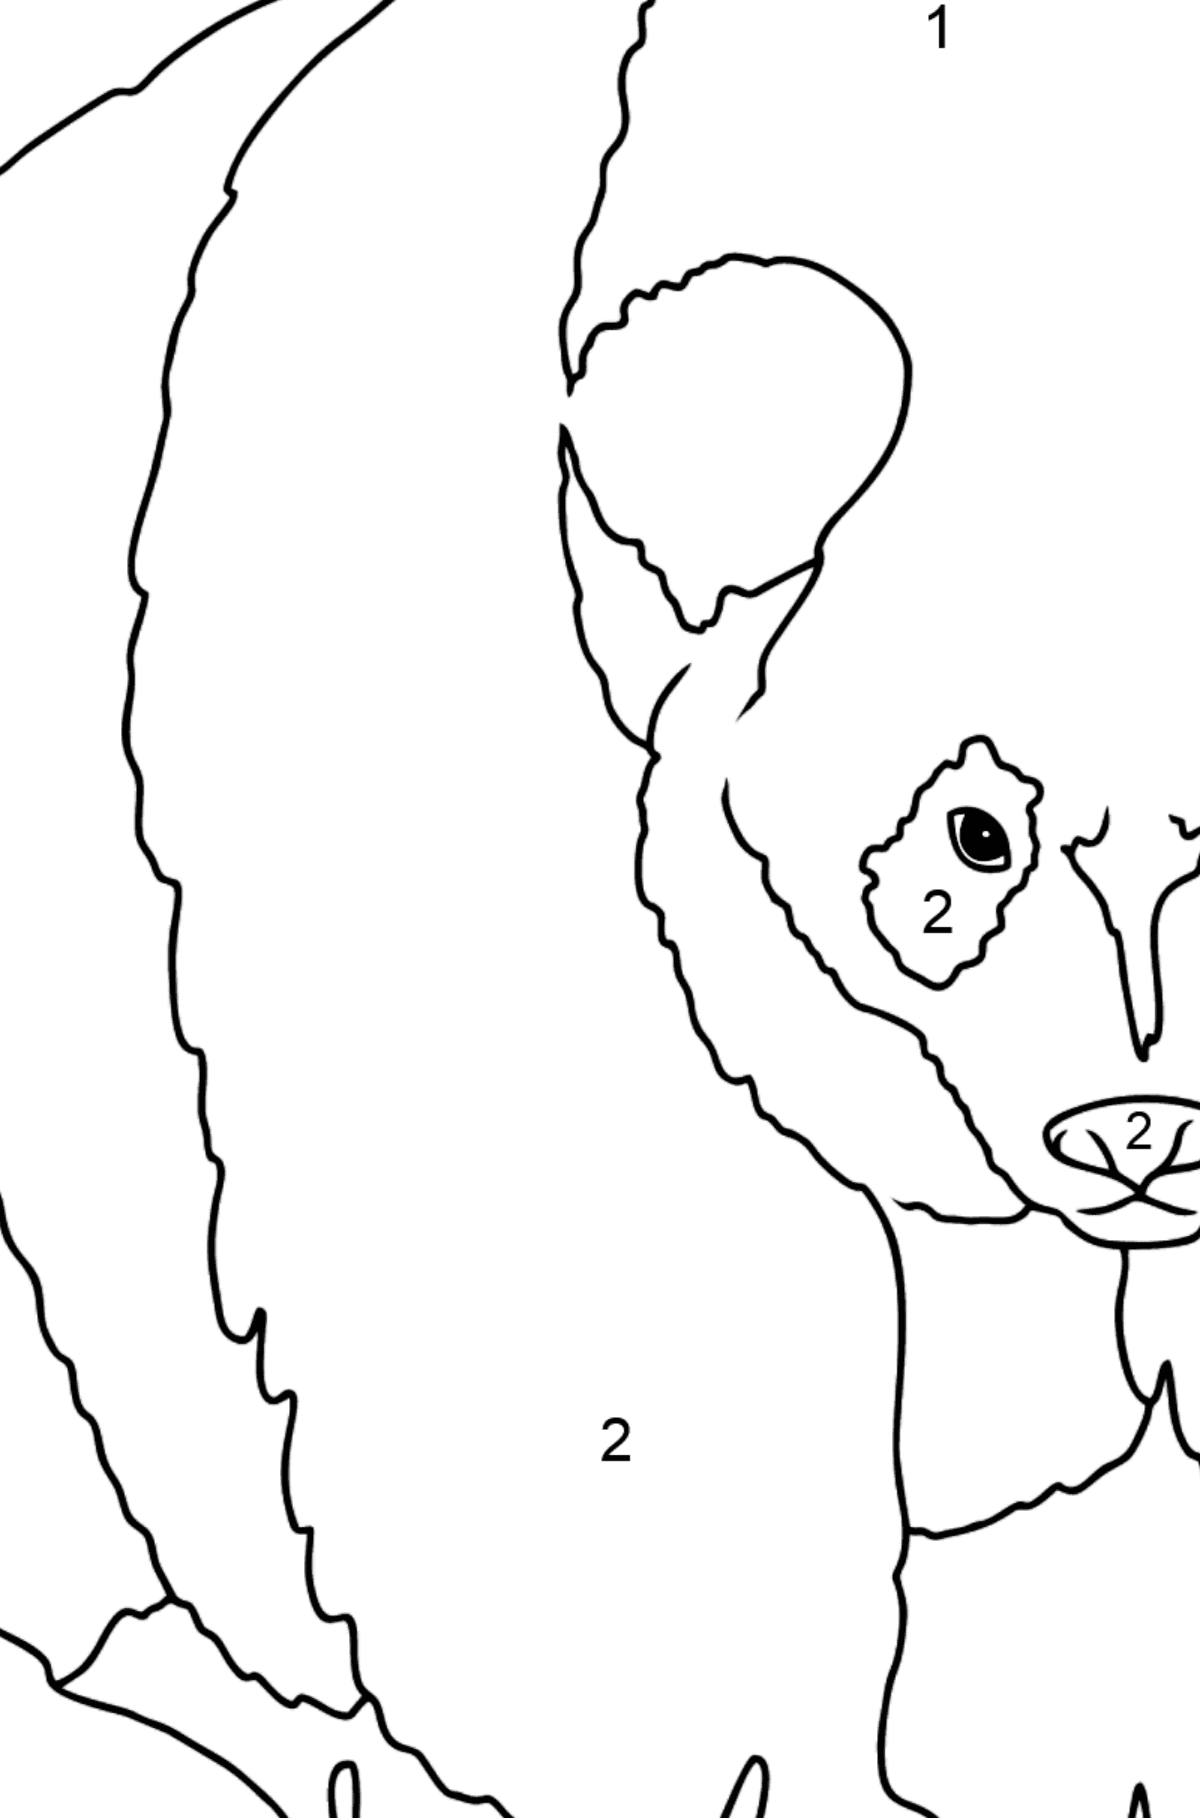 Coloring Page - A Panda is Standing - Coloring by Numbers for Kids